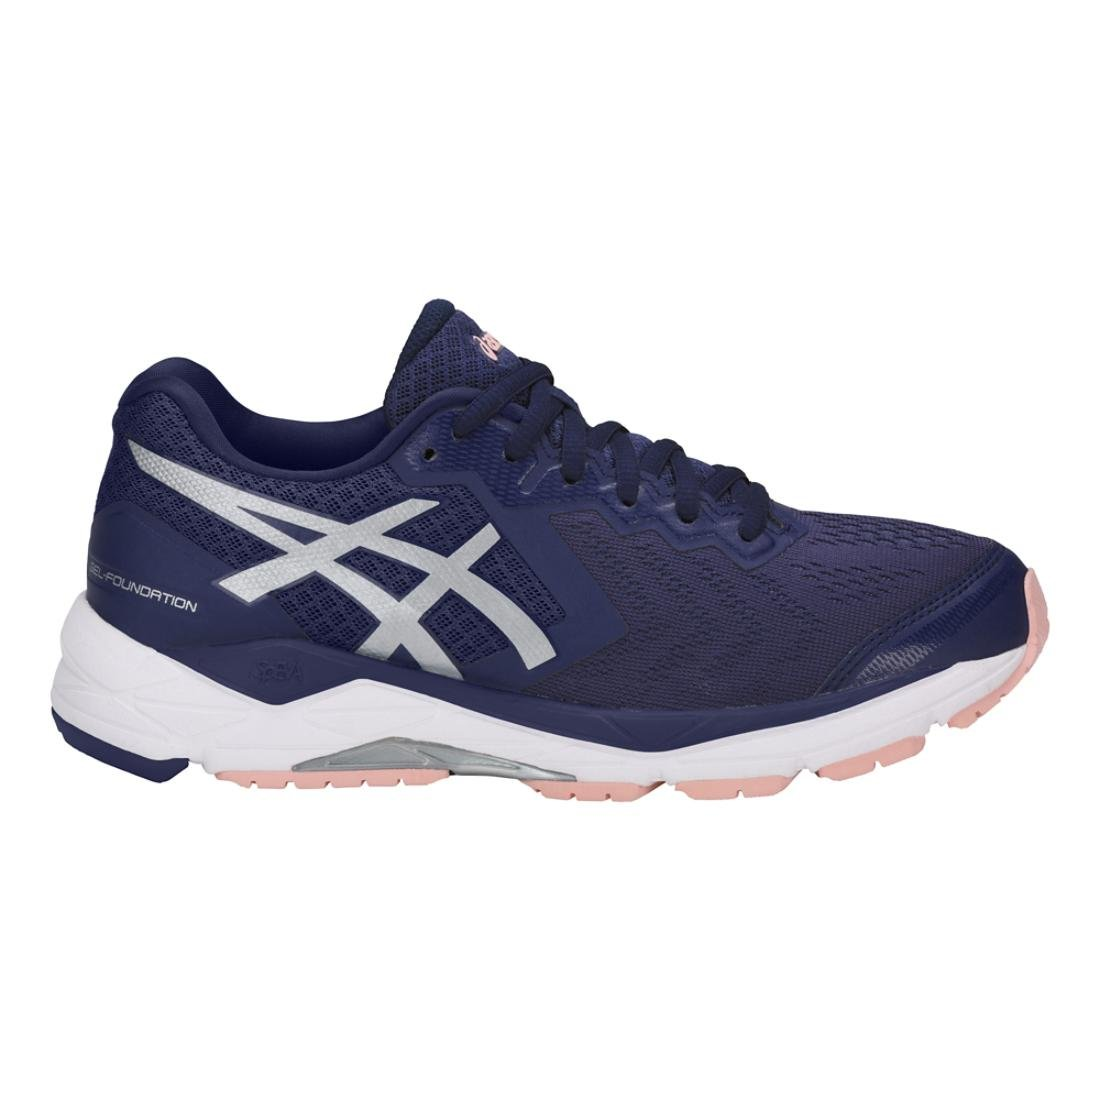 ASICS 11 Women's Gel-Foundation 13 Running Shoes B077MBW4BX 11 ASICS D US|Indigo Blue/Silver/Seashell Pink 134ef5